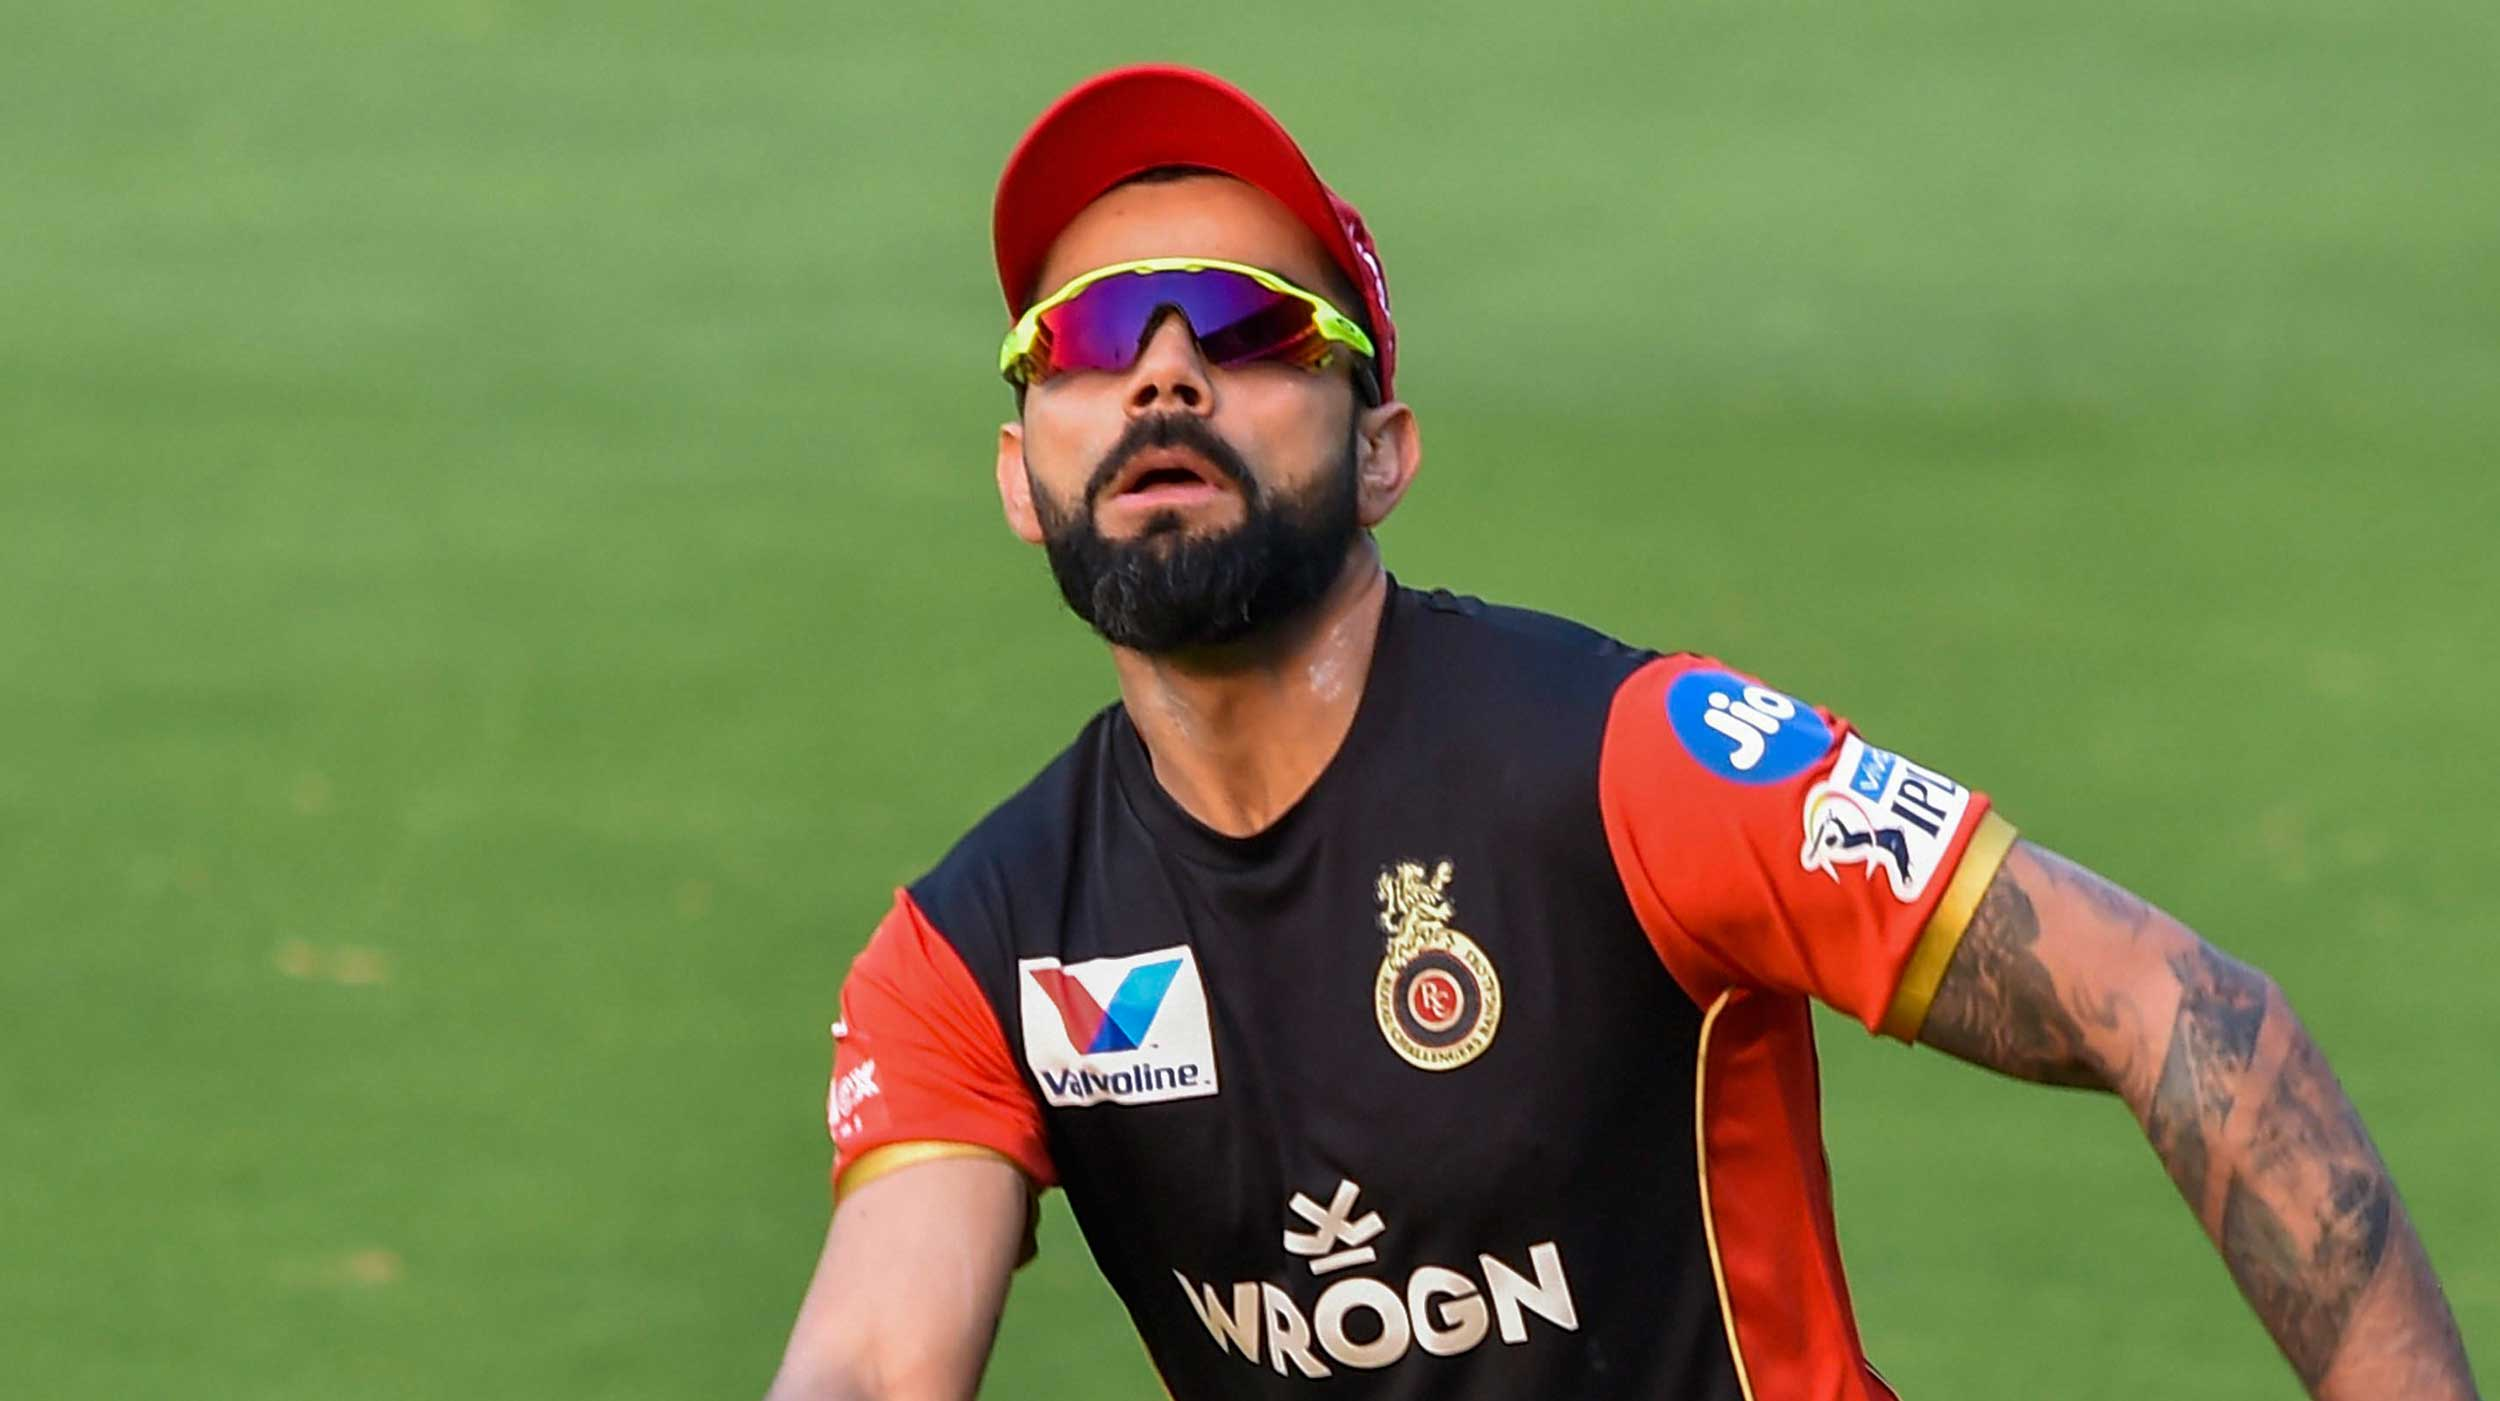 Virat Kohli during a training session ahead of the IPL T20 cricket match between Sunrisers Hyderabad and Royal Challengers Bangalore at Rajiv Gandhi International Cricket Stadium in Hyderabad, on March 30, 2019.